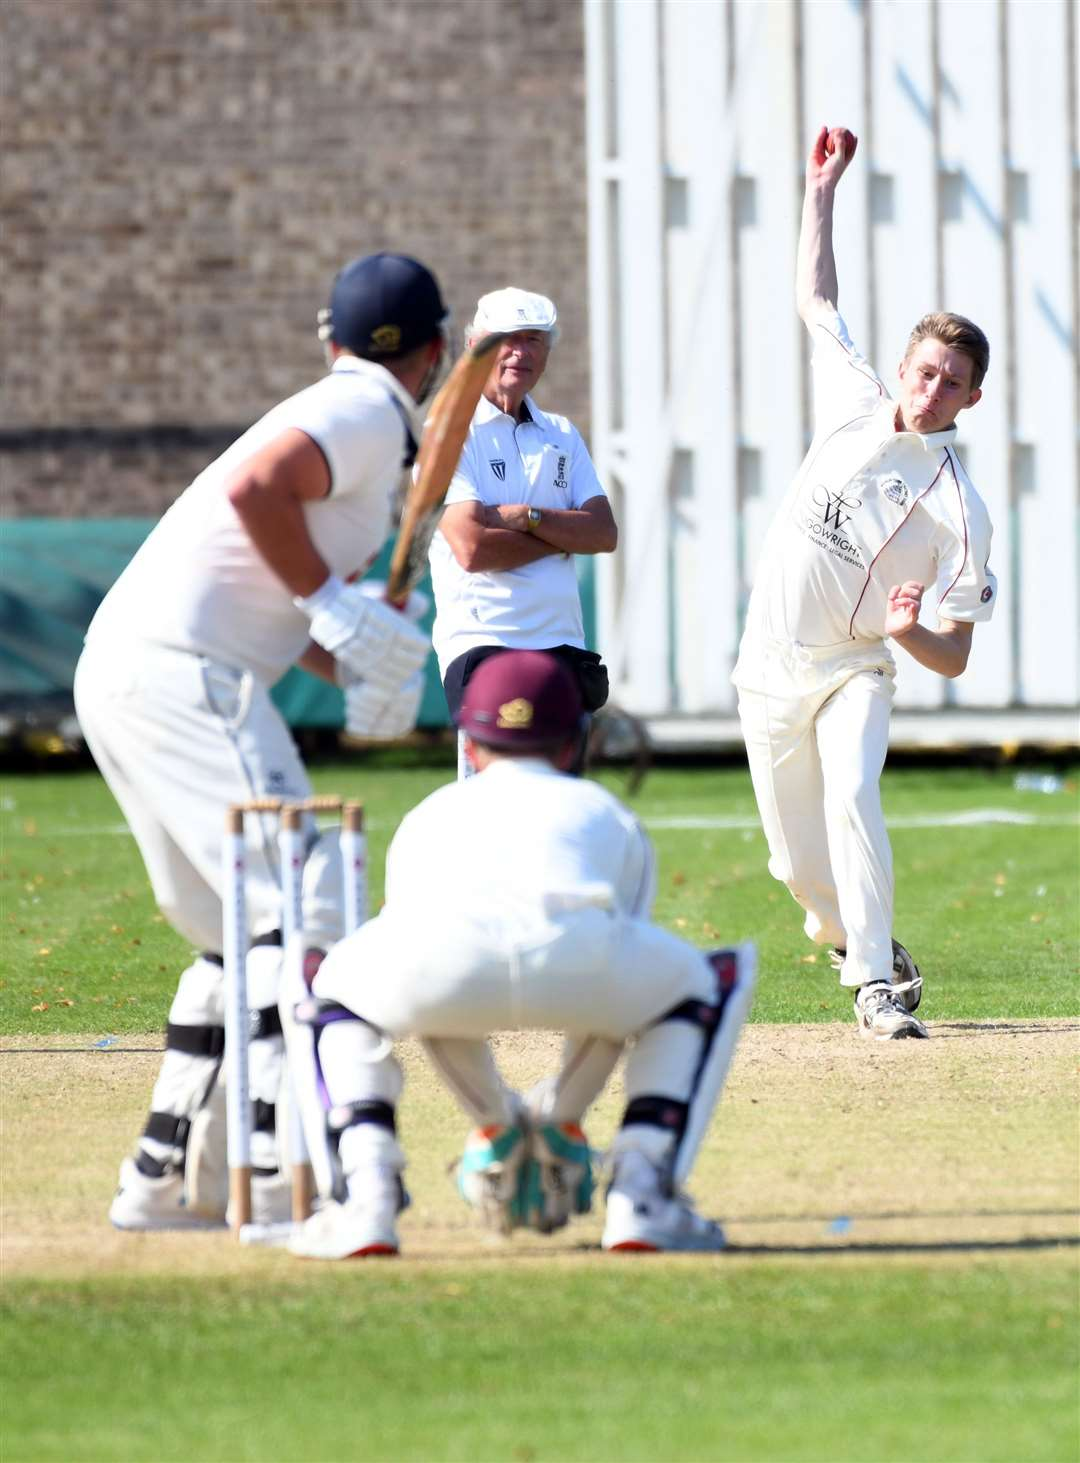 Sam Clarke bowling for March against Wisbech in their Rutland League clash back in September.